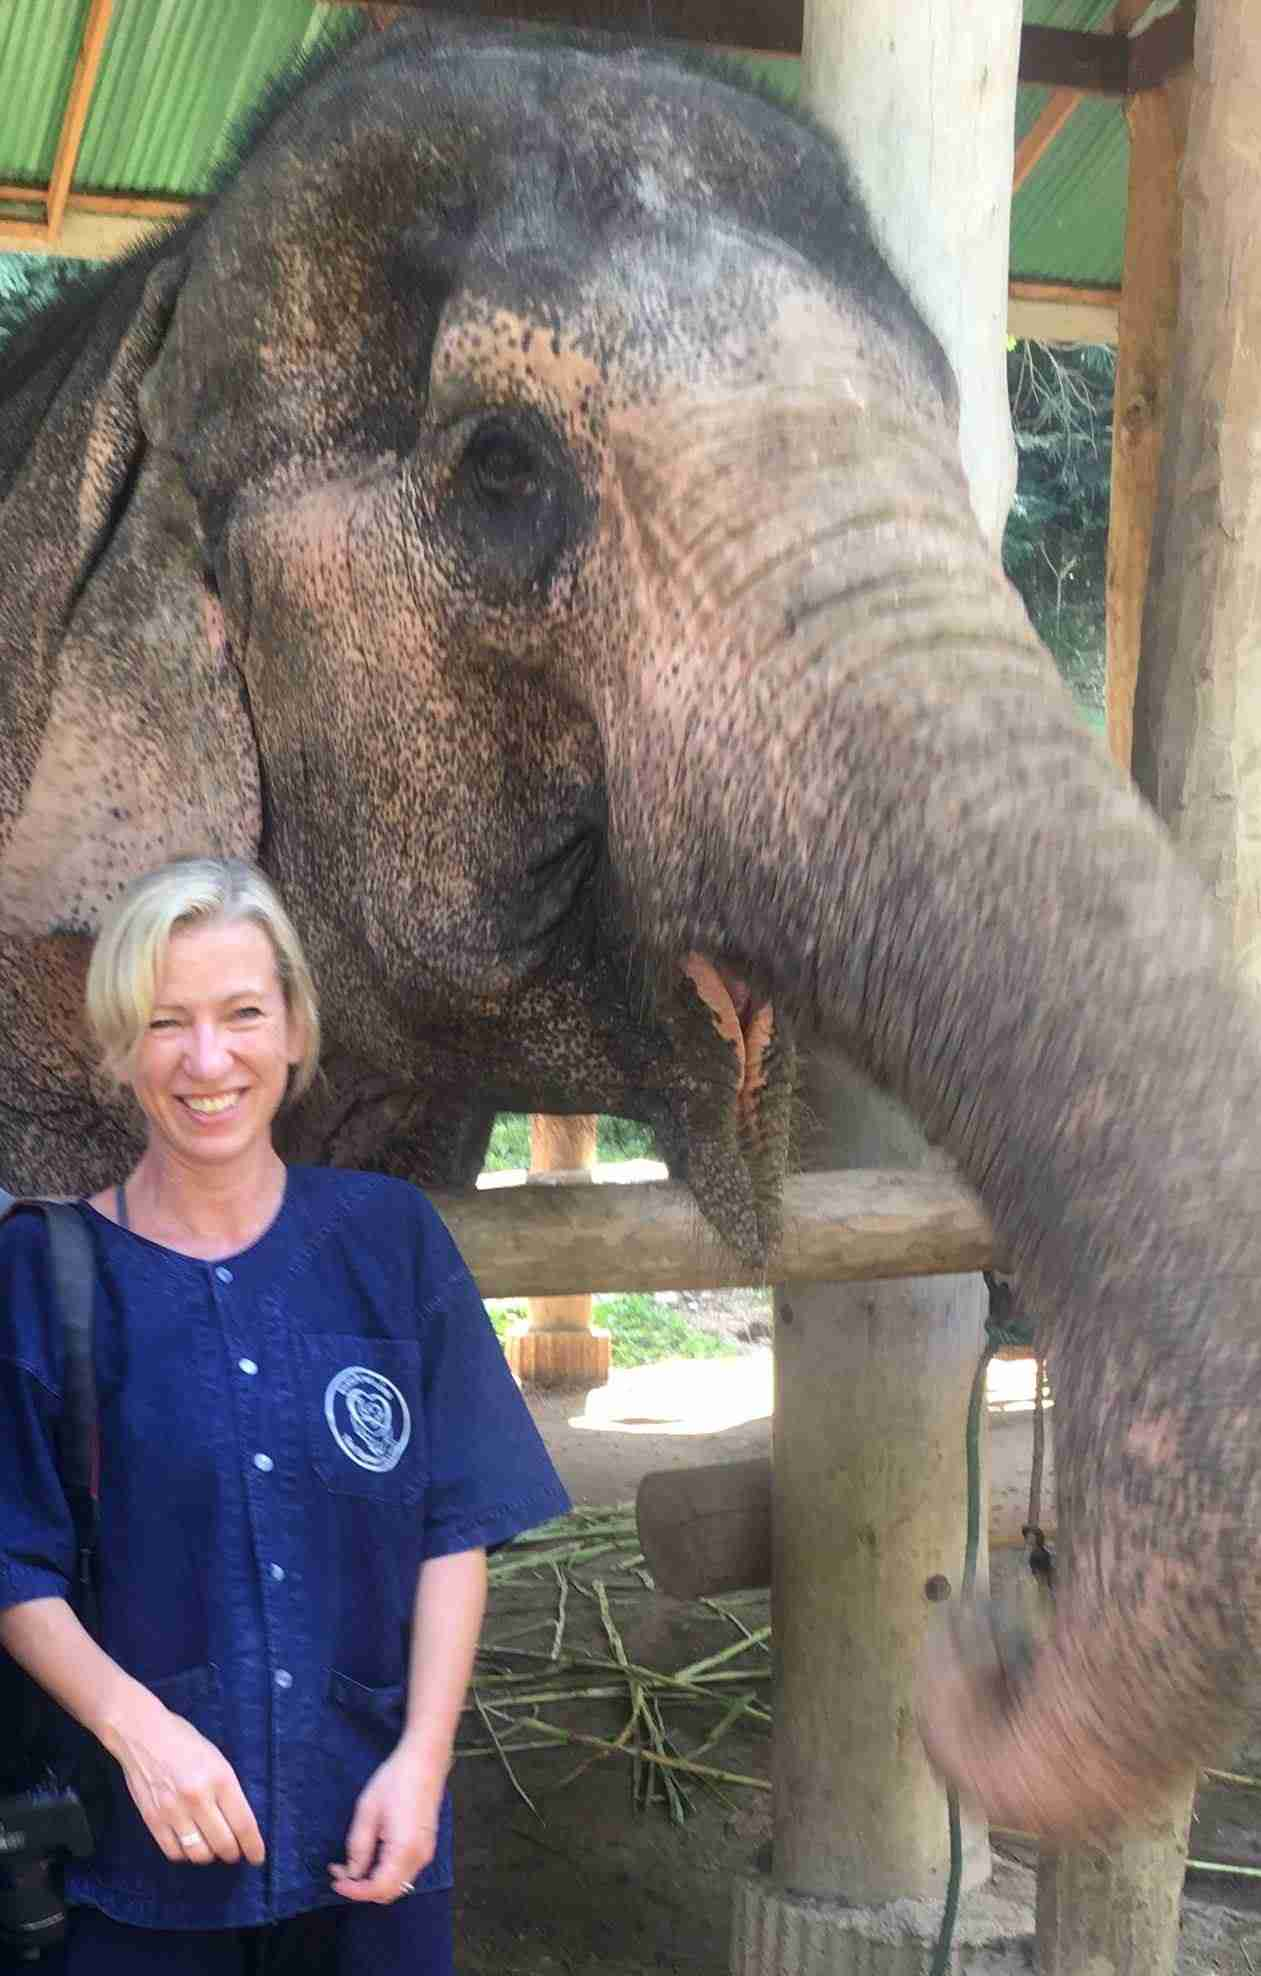 Louise standing next to an elephant